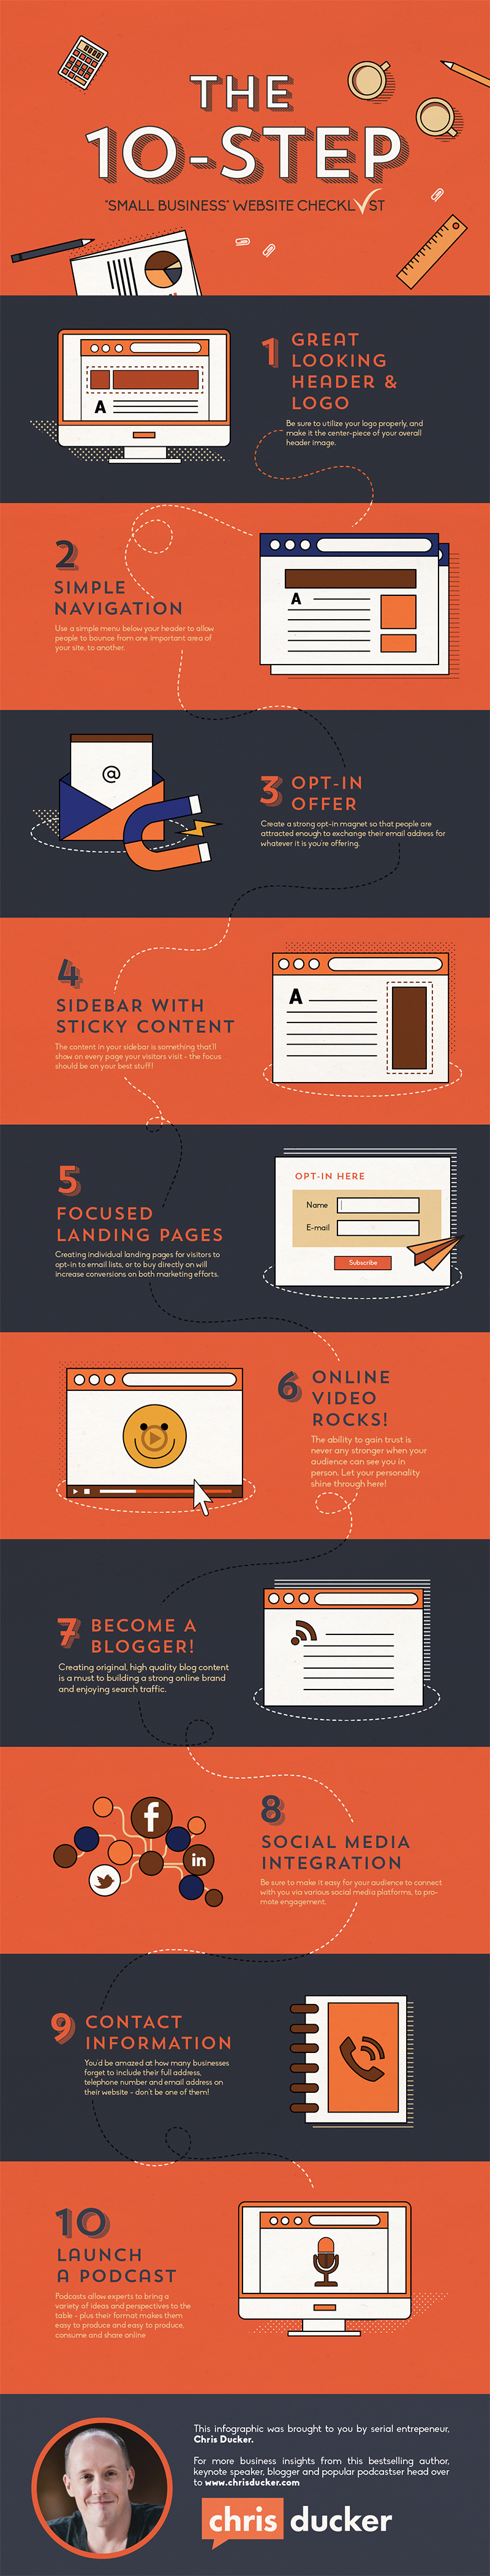 Web Design Checklist: 10 Tips for a More Effective Business Website [Infographic]